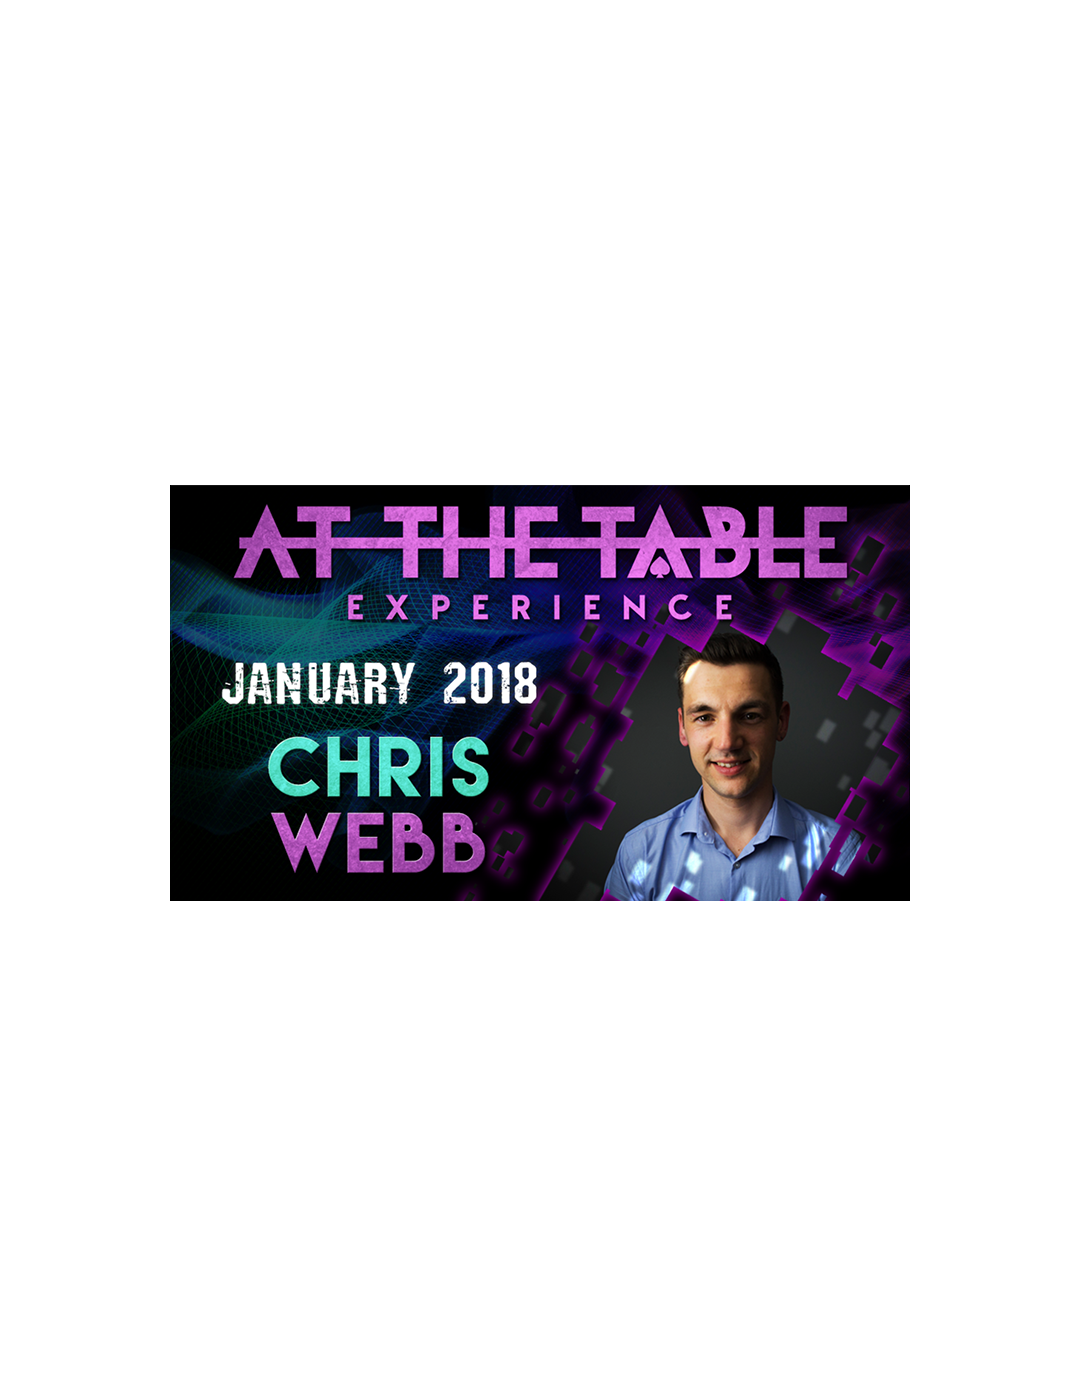 At The Table Live Lecture Chris Webb 3 ianuarie 2018 - At the table lecture